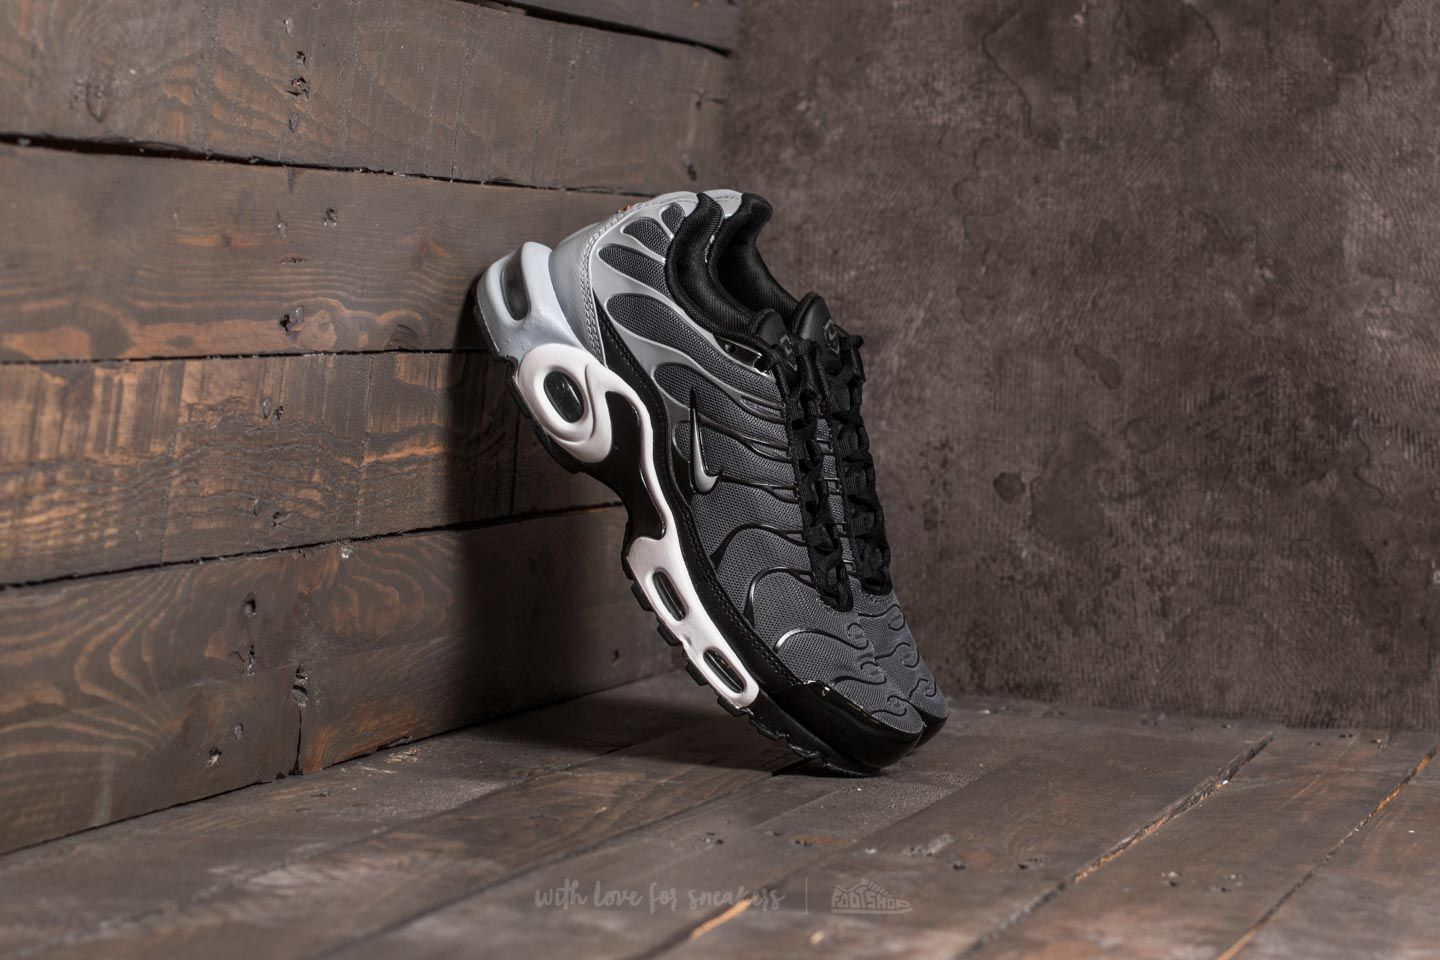 6f2cd4c4806491 Nike Air Max Plus Dark Grey  Wolf Grey  Black